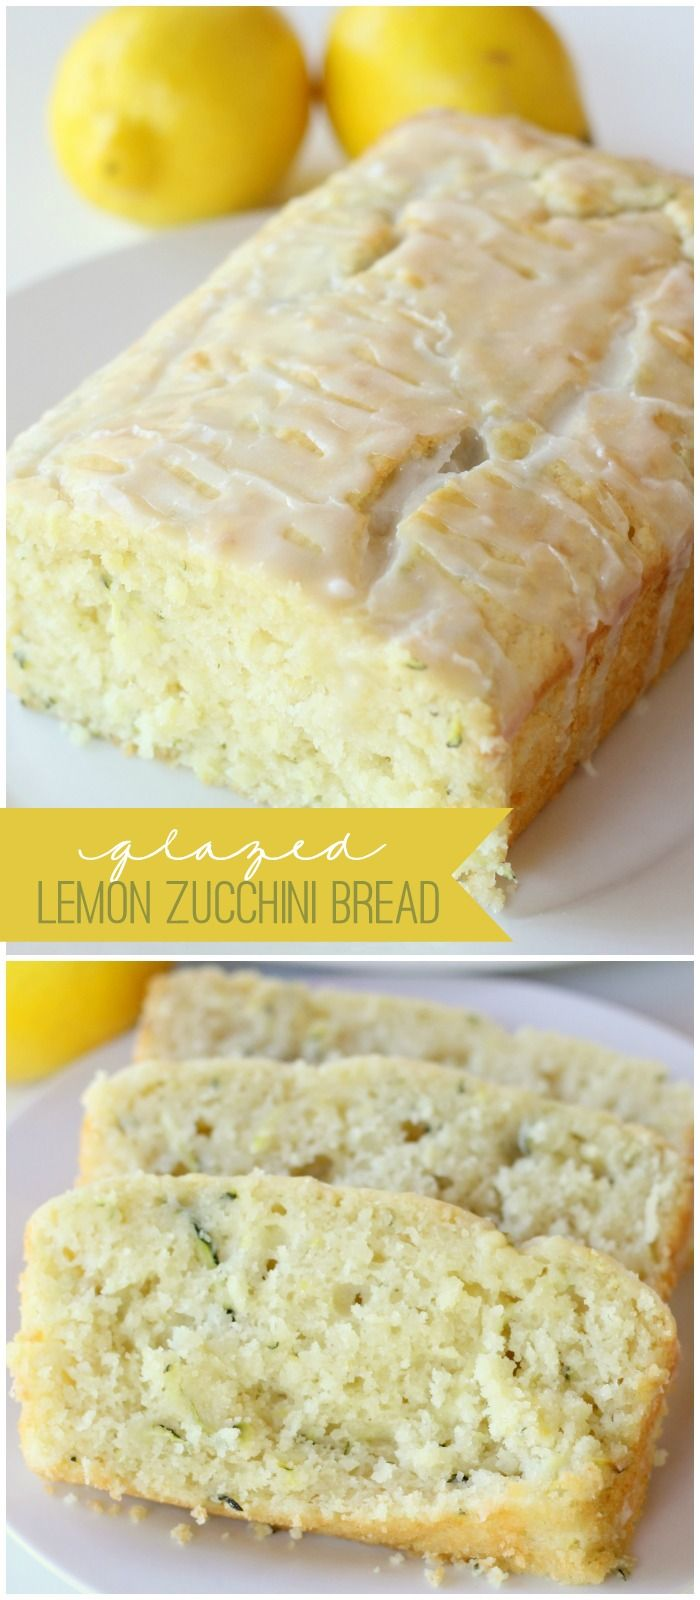 Glazed Lemon Zucchini Bread: Zucchini Recipe, Lemon Glaze Zucchini Bread, Lemon Cake, Breads Recipe, Lemon Zucchini Breads, Sugar Free Zucchini Bread, Lemon Recipe, Glaze Lemon, Lemon Bread